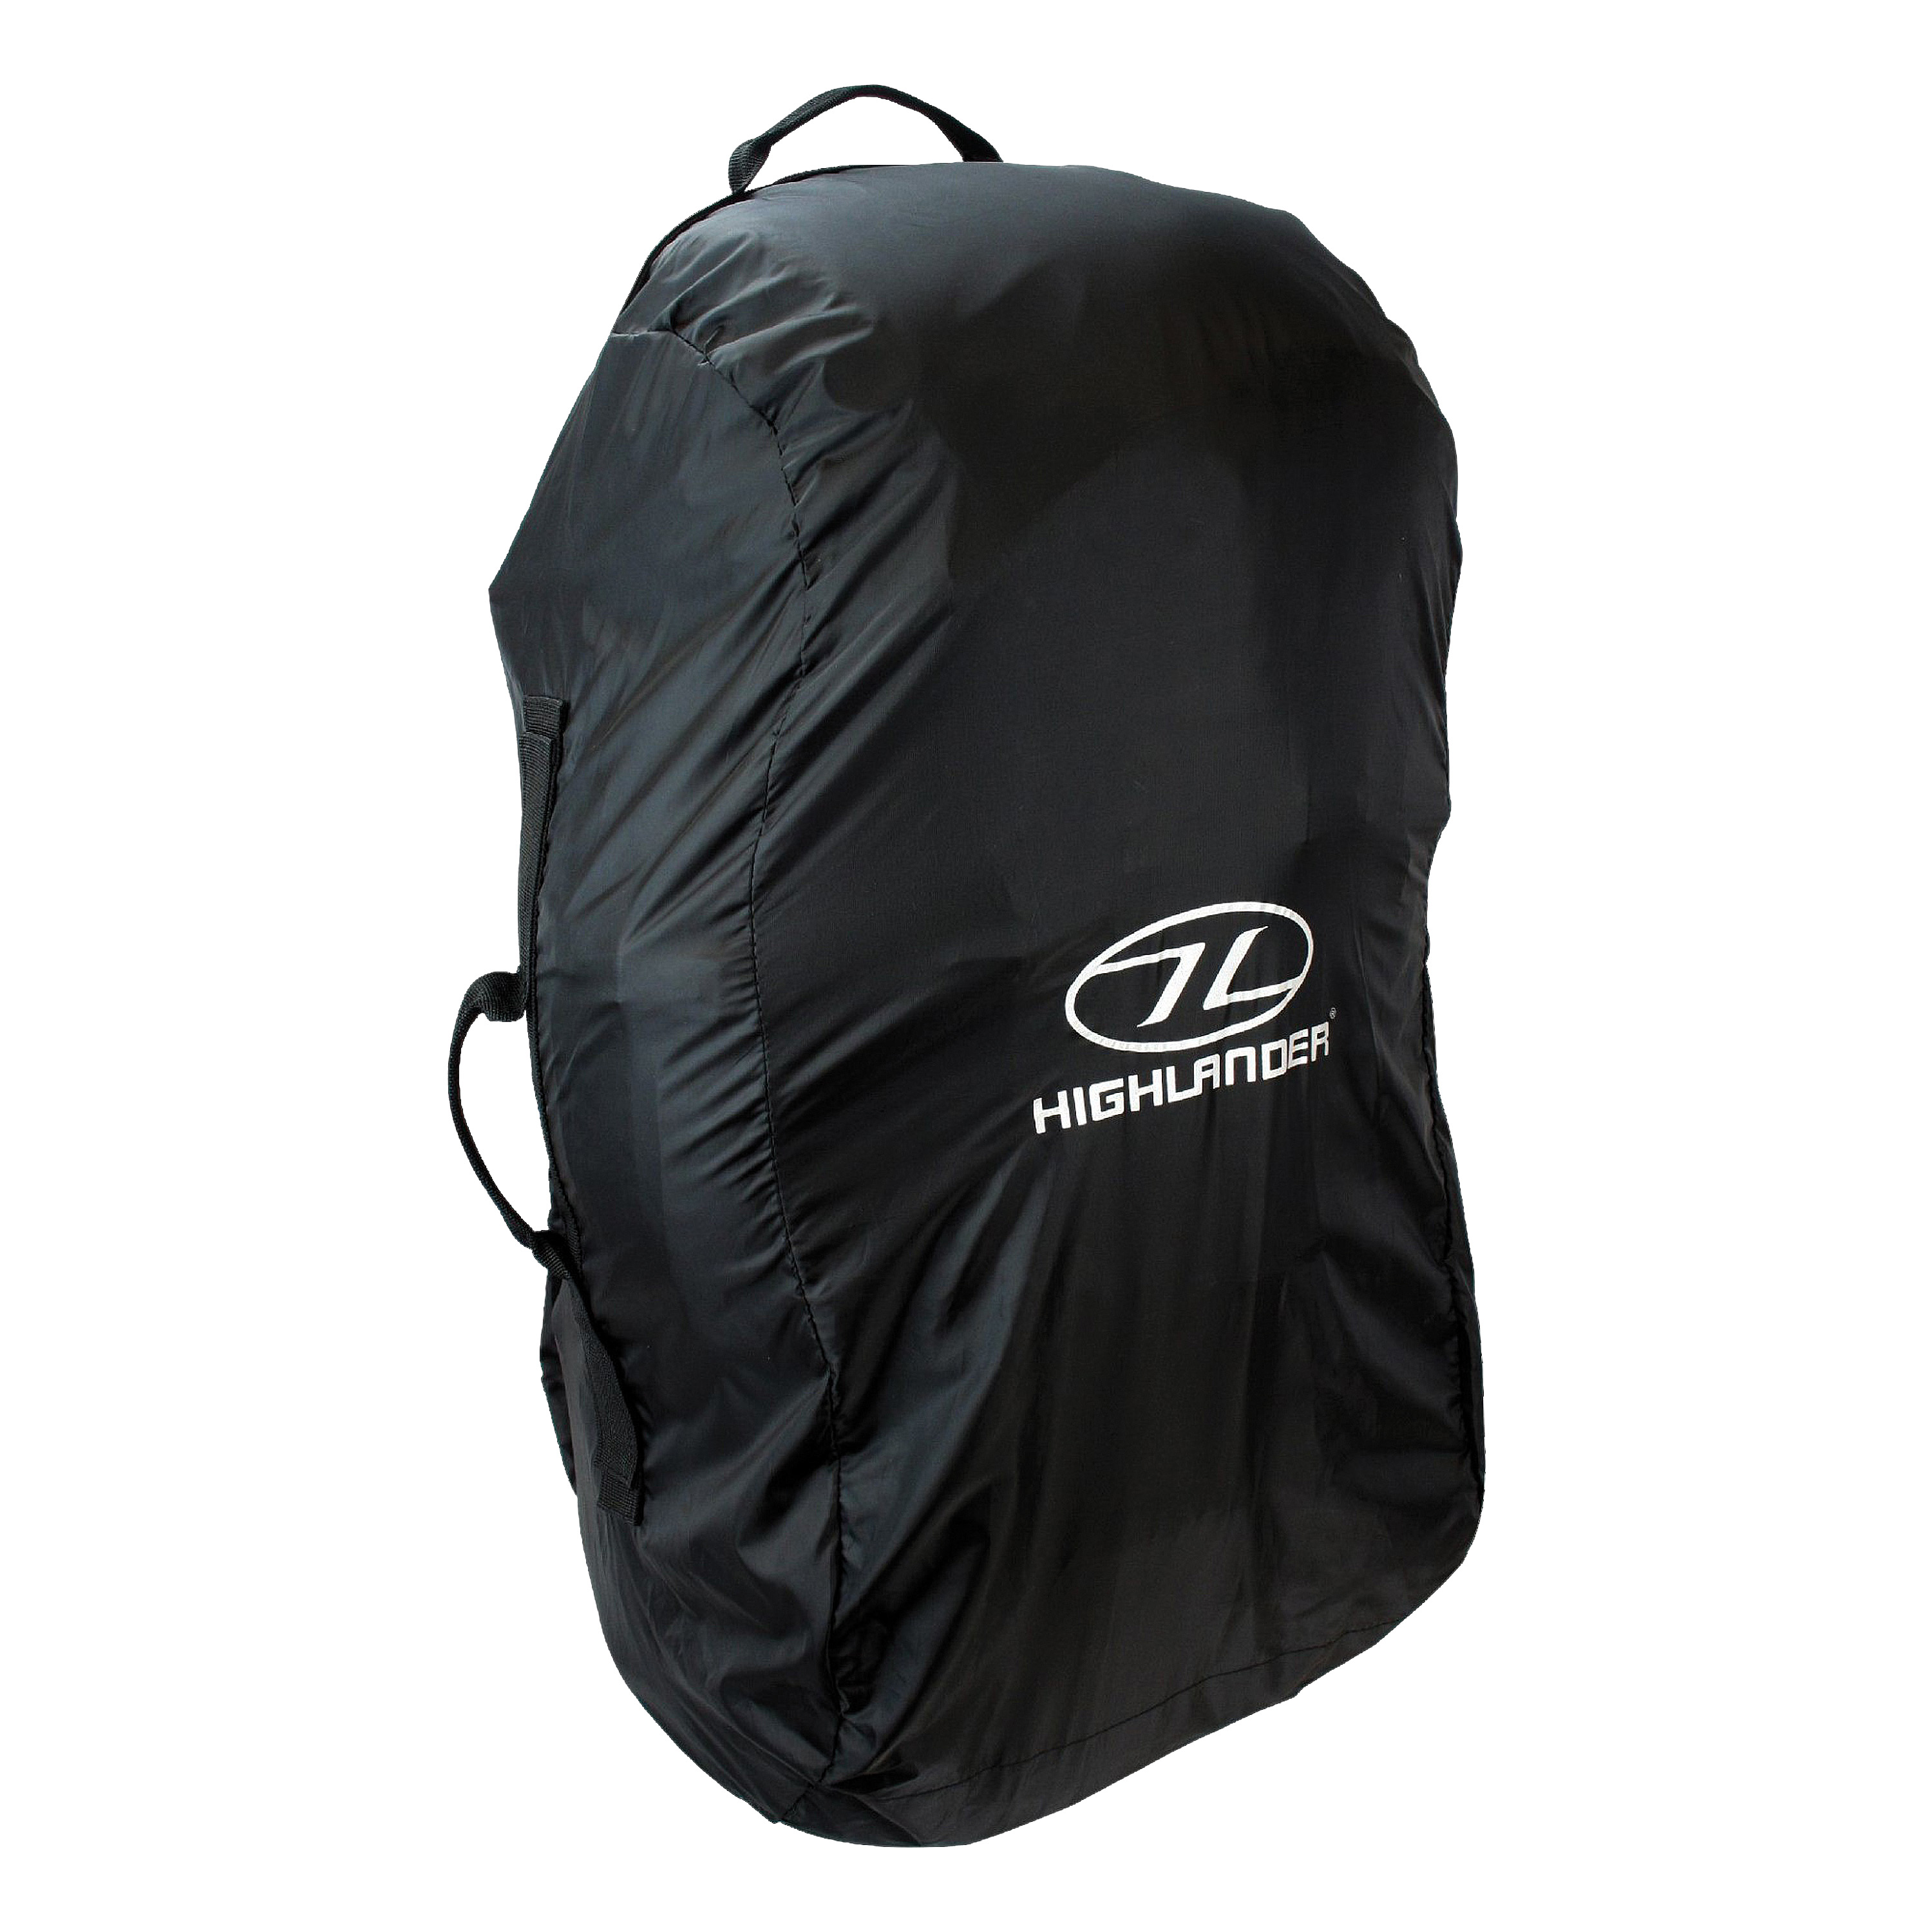 Highlander Backpack/Bag Combo Middle black